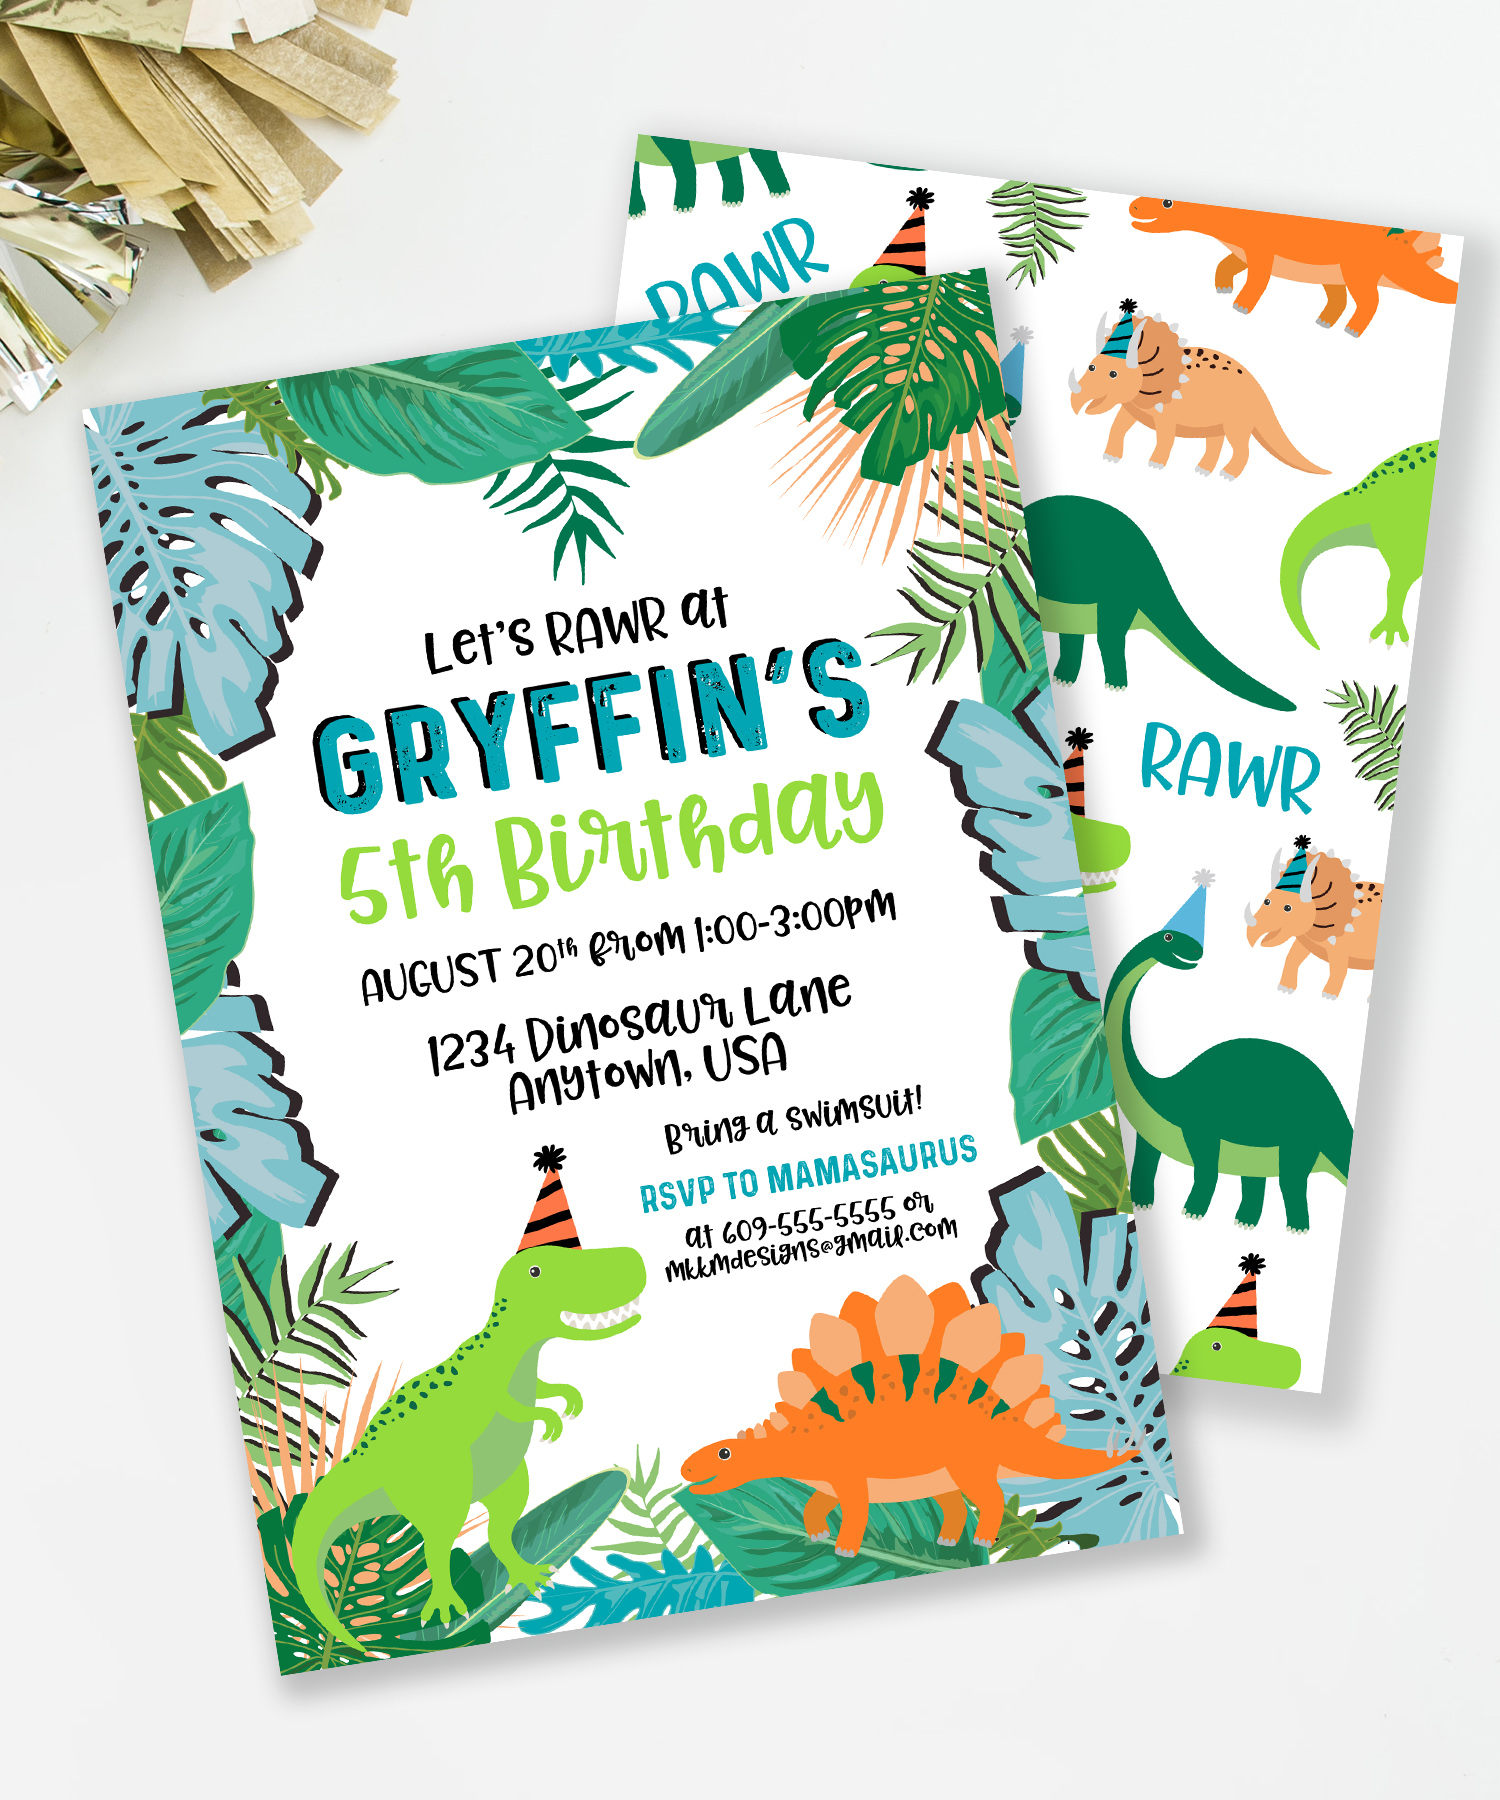 Tropical Dinosaur Party Invitation from MKKMDesigns